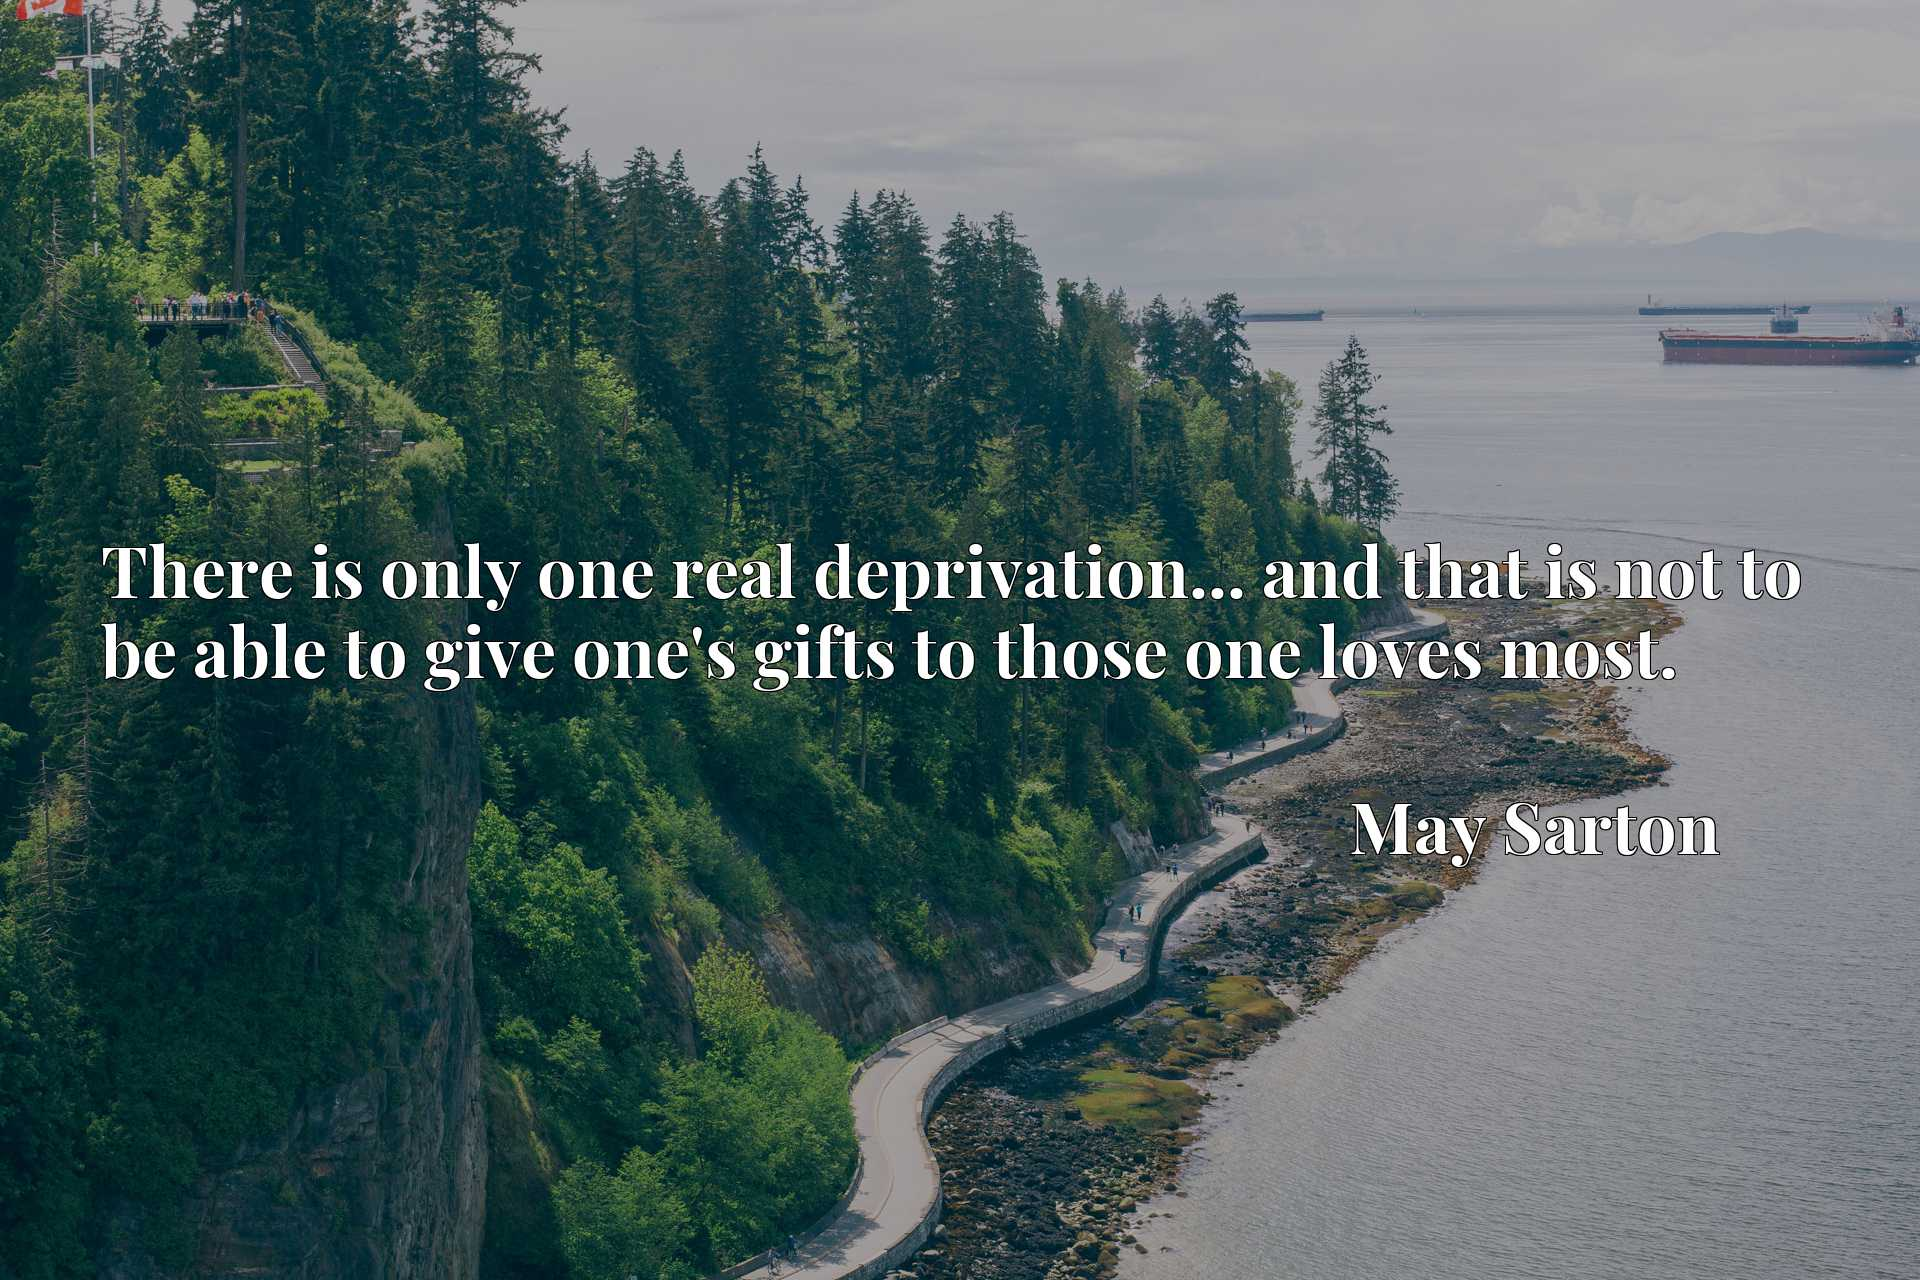 Quote Picture :There is only one real deprivation... and that is not to be able to give one's gifts to those one loves most.